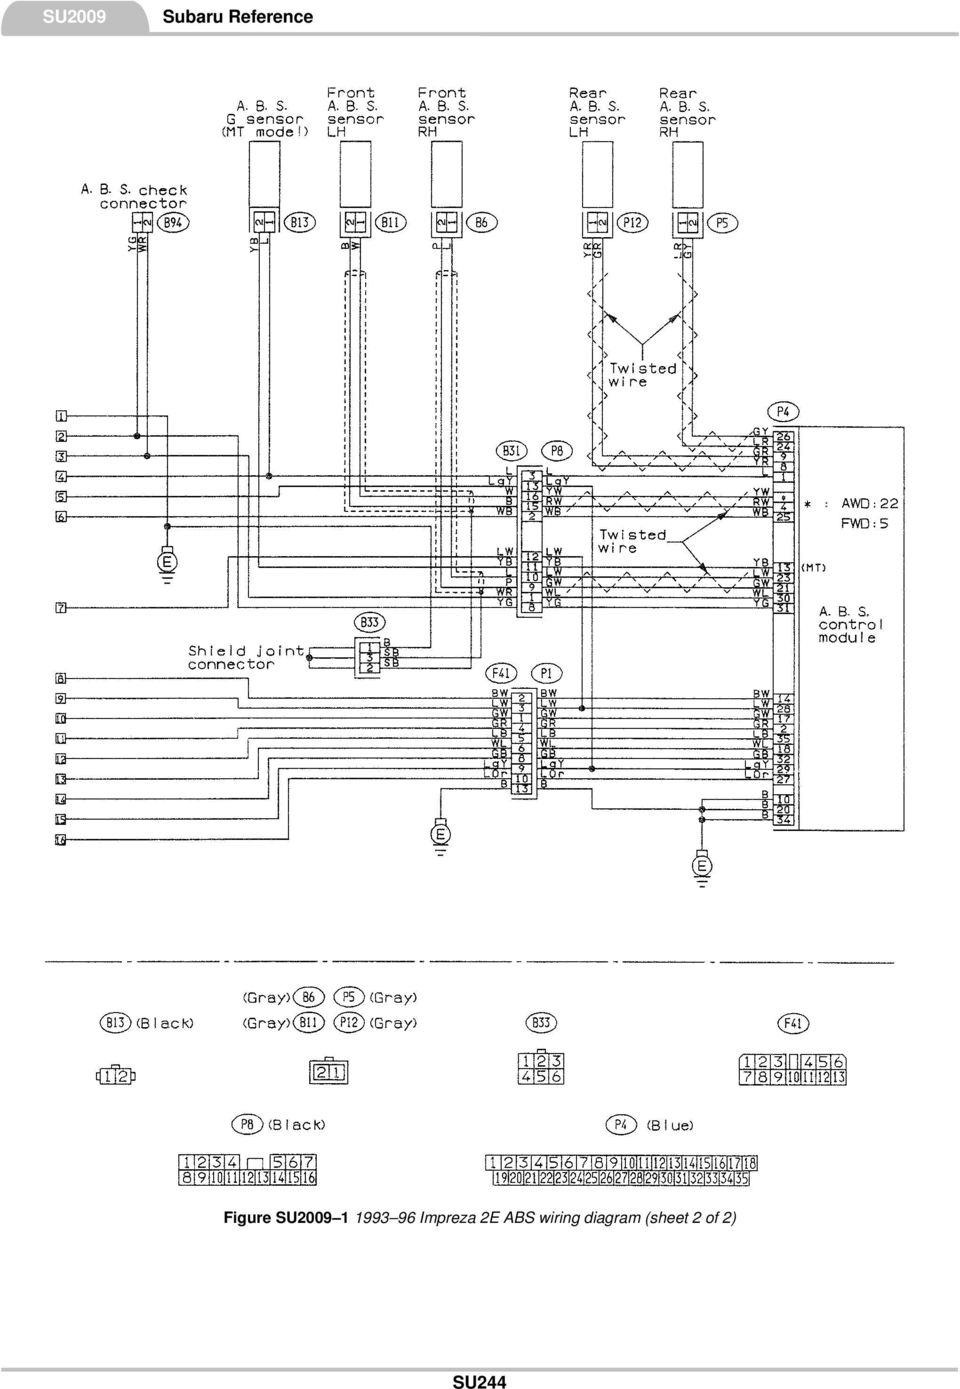 Subaru Impreza Central Locking Wiring Diagram Detailed Schematics 360 Reference This Contains The Following Information 1996 Legacy